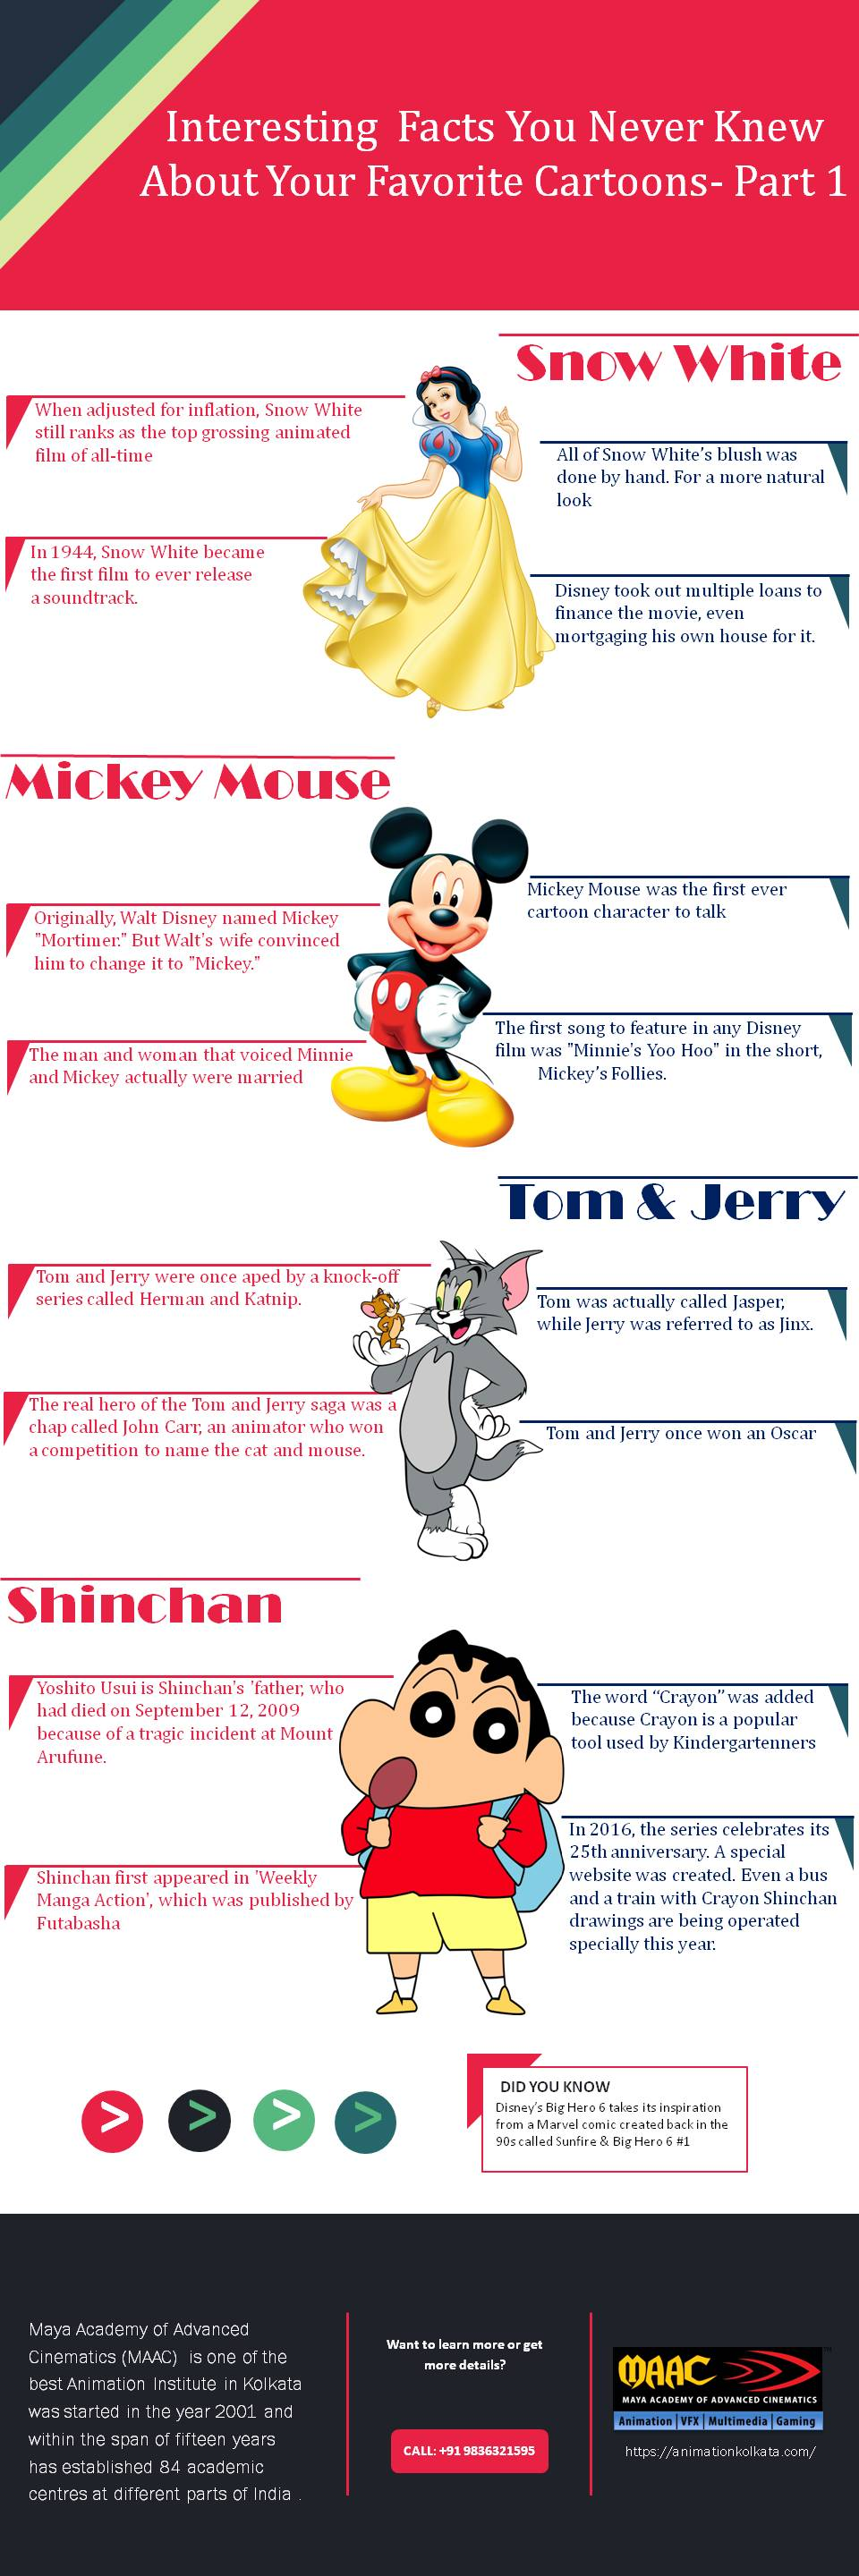 interesting-facts-you-never-knew-about-your-favorite-cartoons-part-1